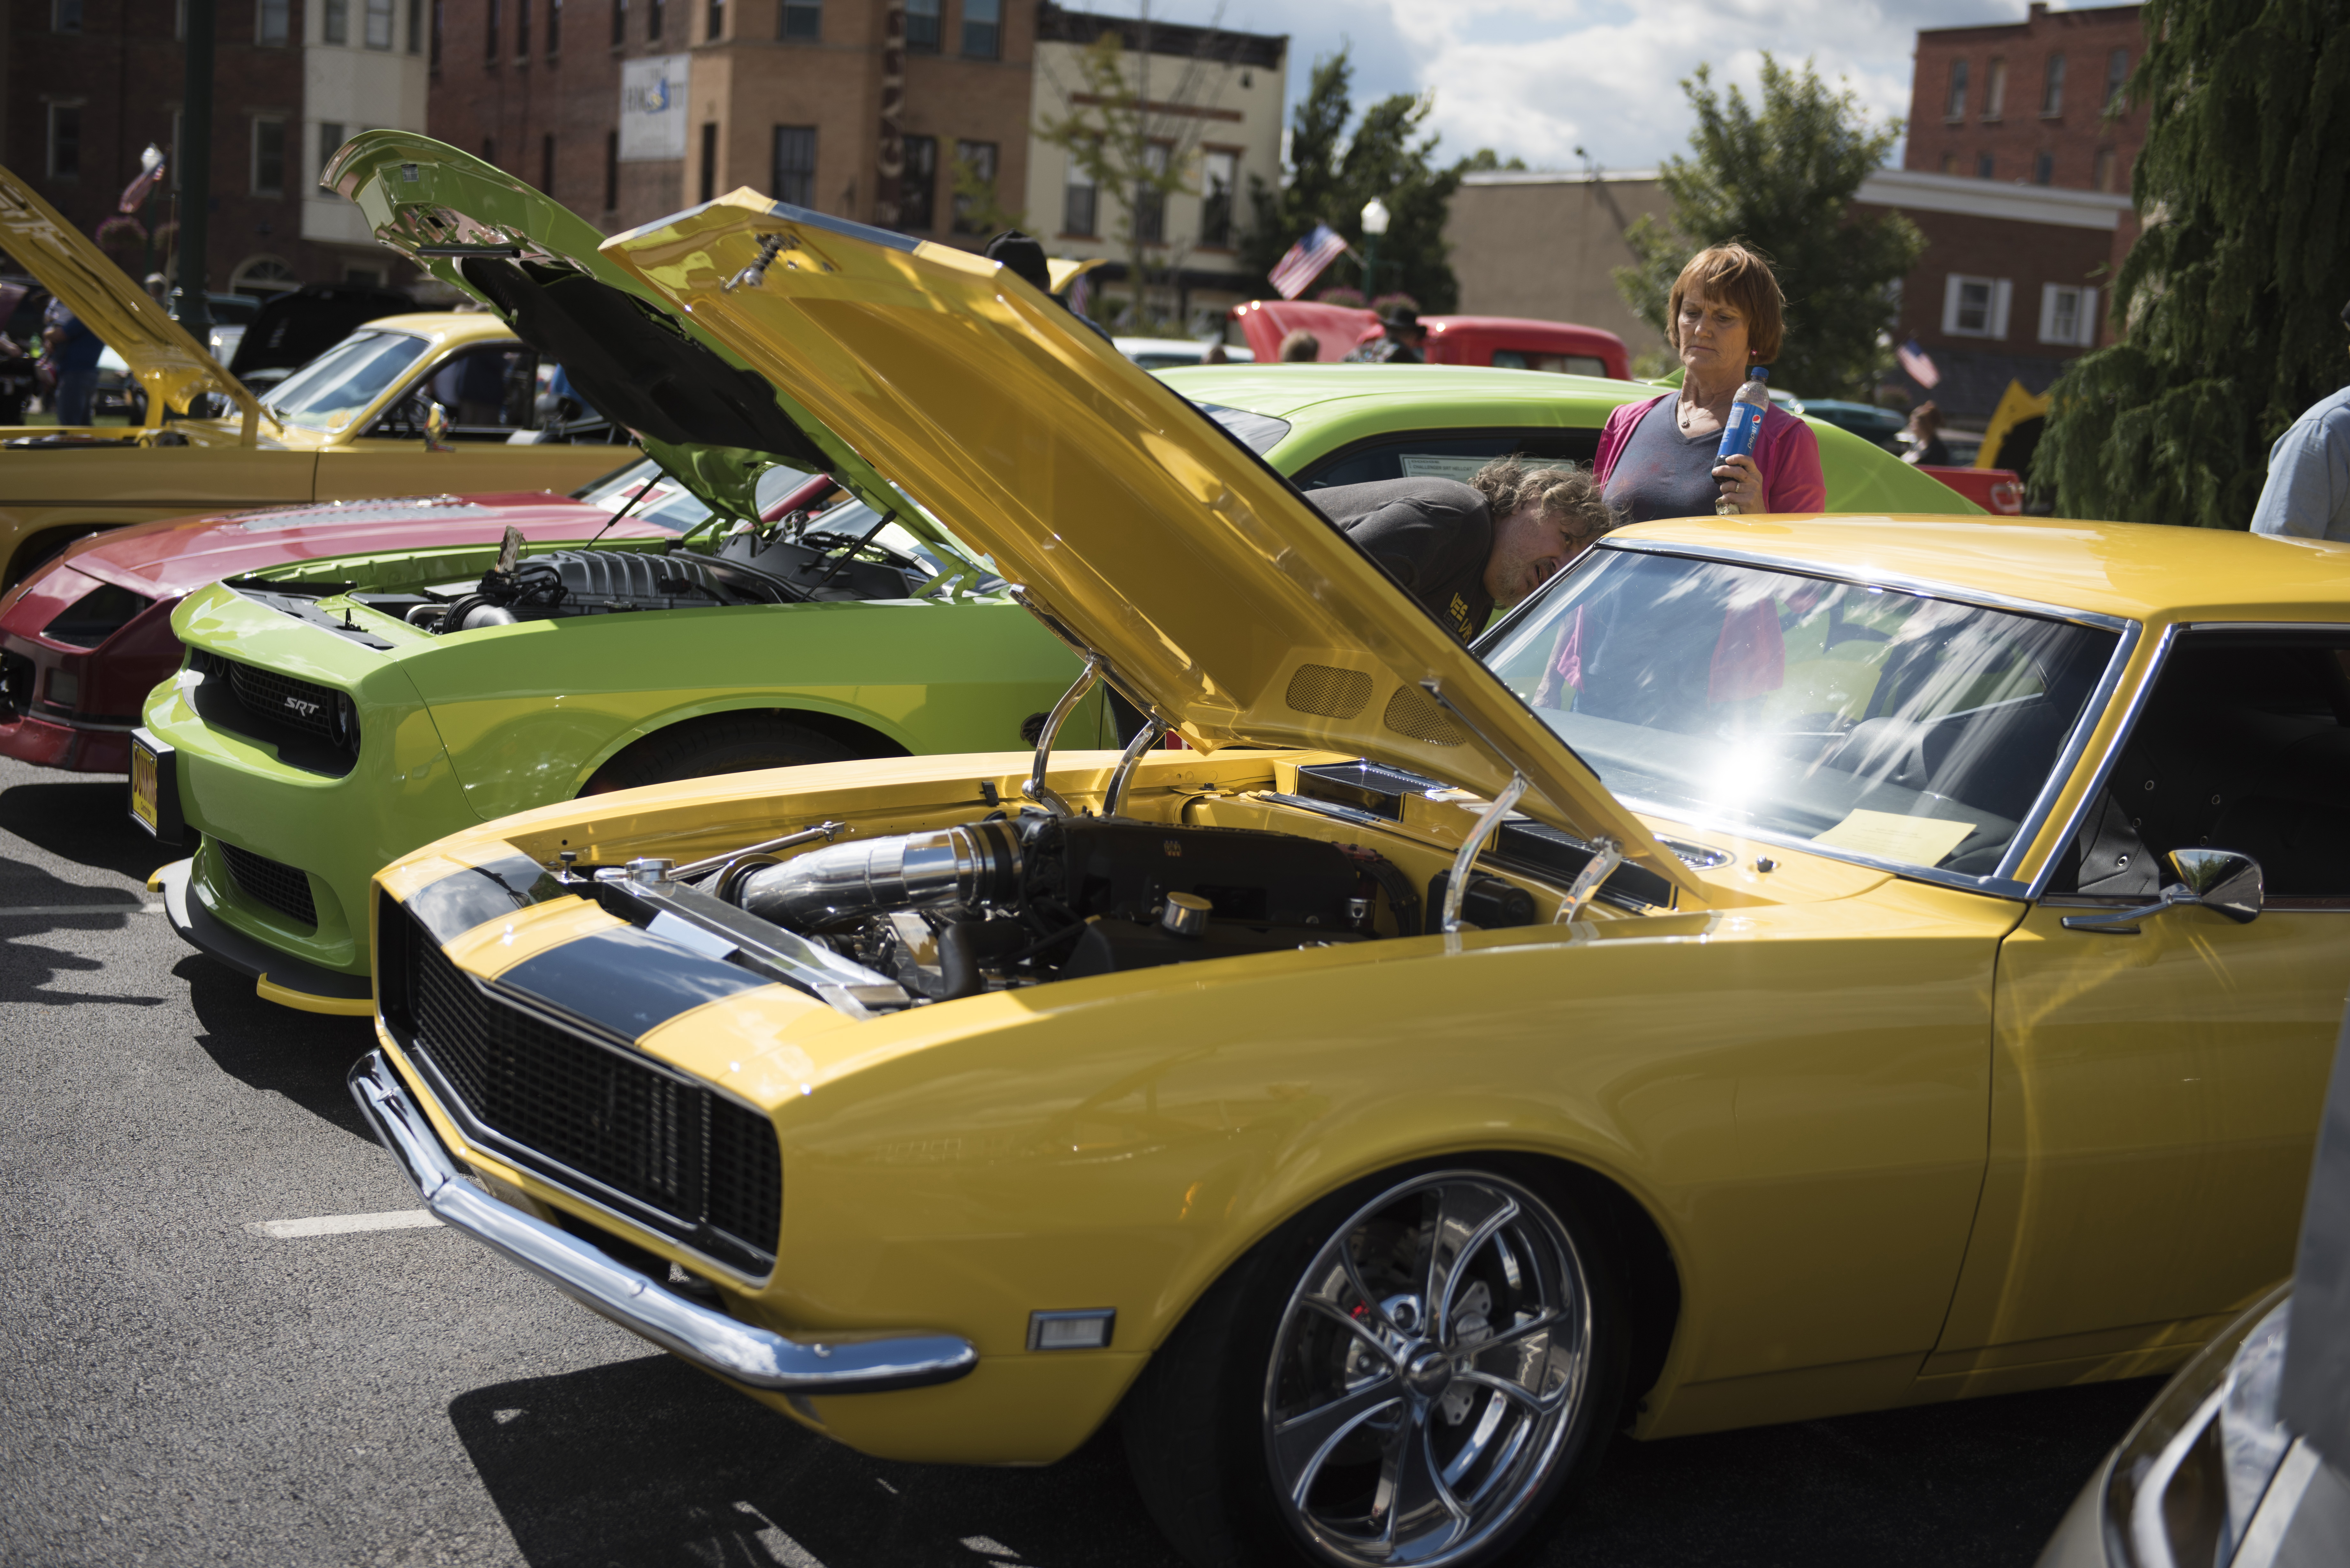 A couple checks out classic cars during the 18th annual Sternwheel Festival Car Show  on Sunday, Sept. 13 in Marietta, OH. The car show crowd is always huge and has become a top draw for the event.